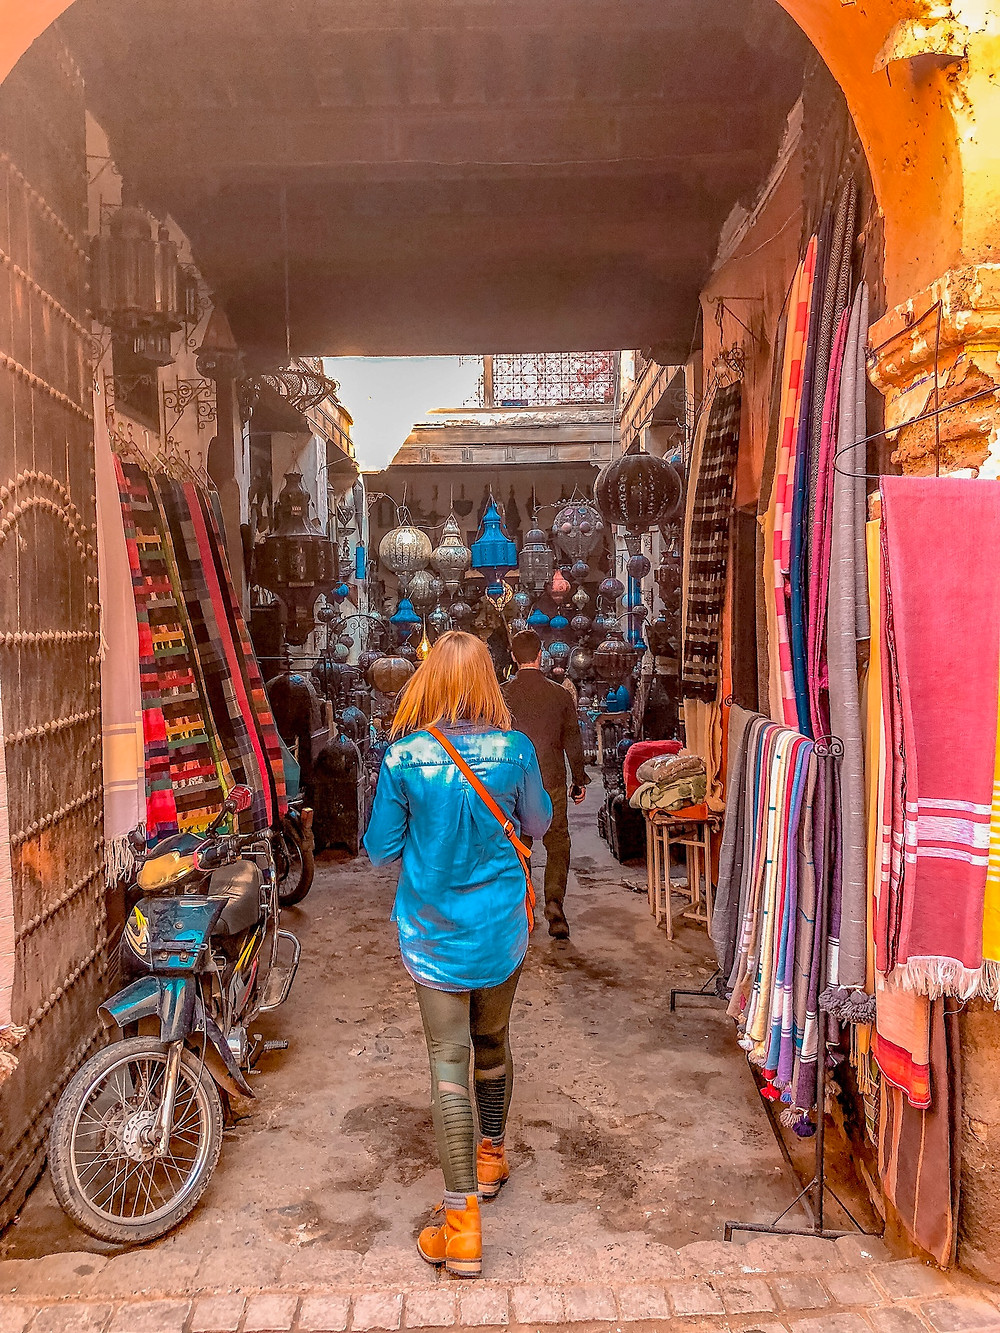 Shopping in the Souks